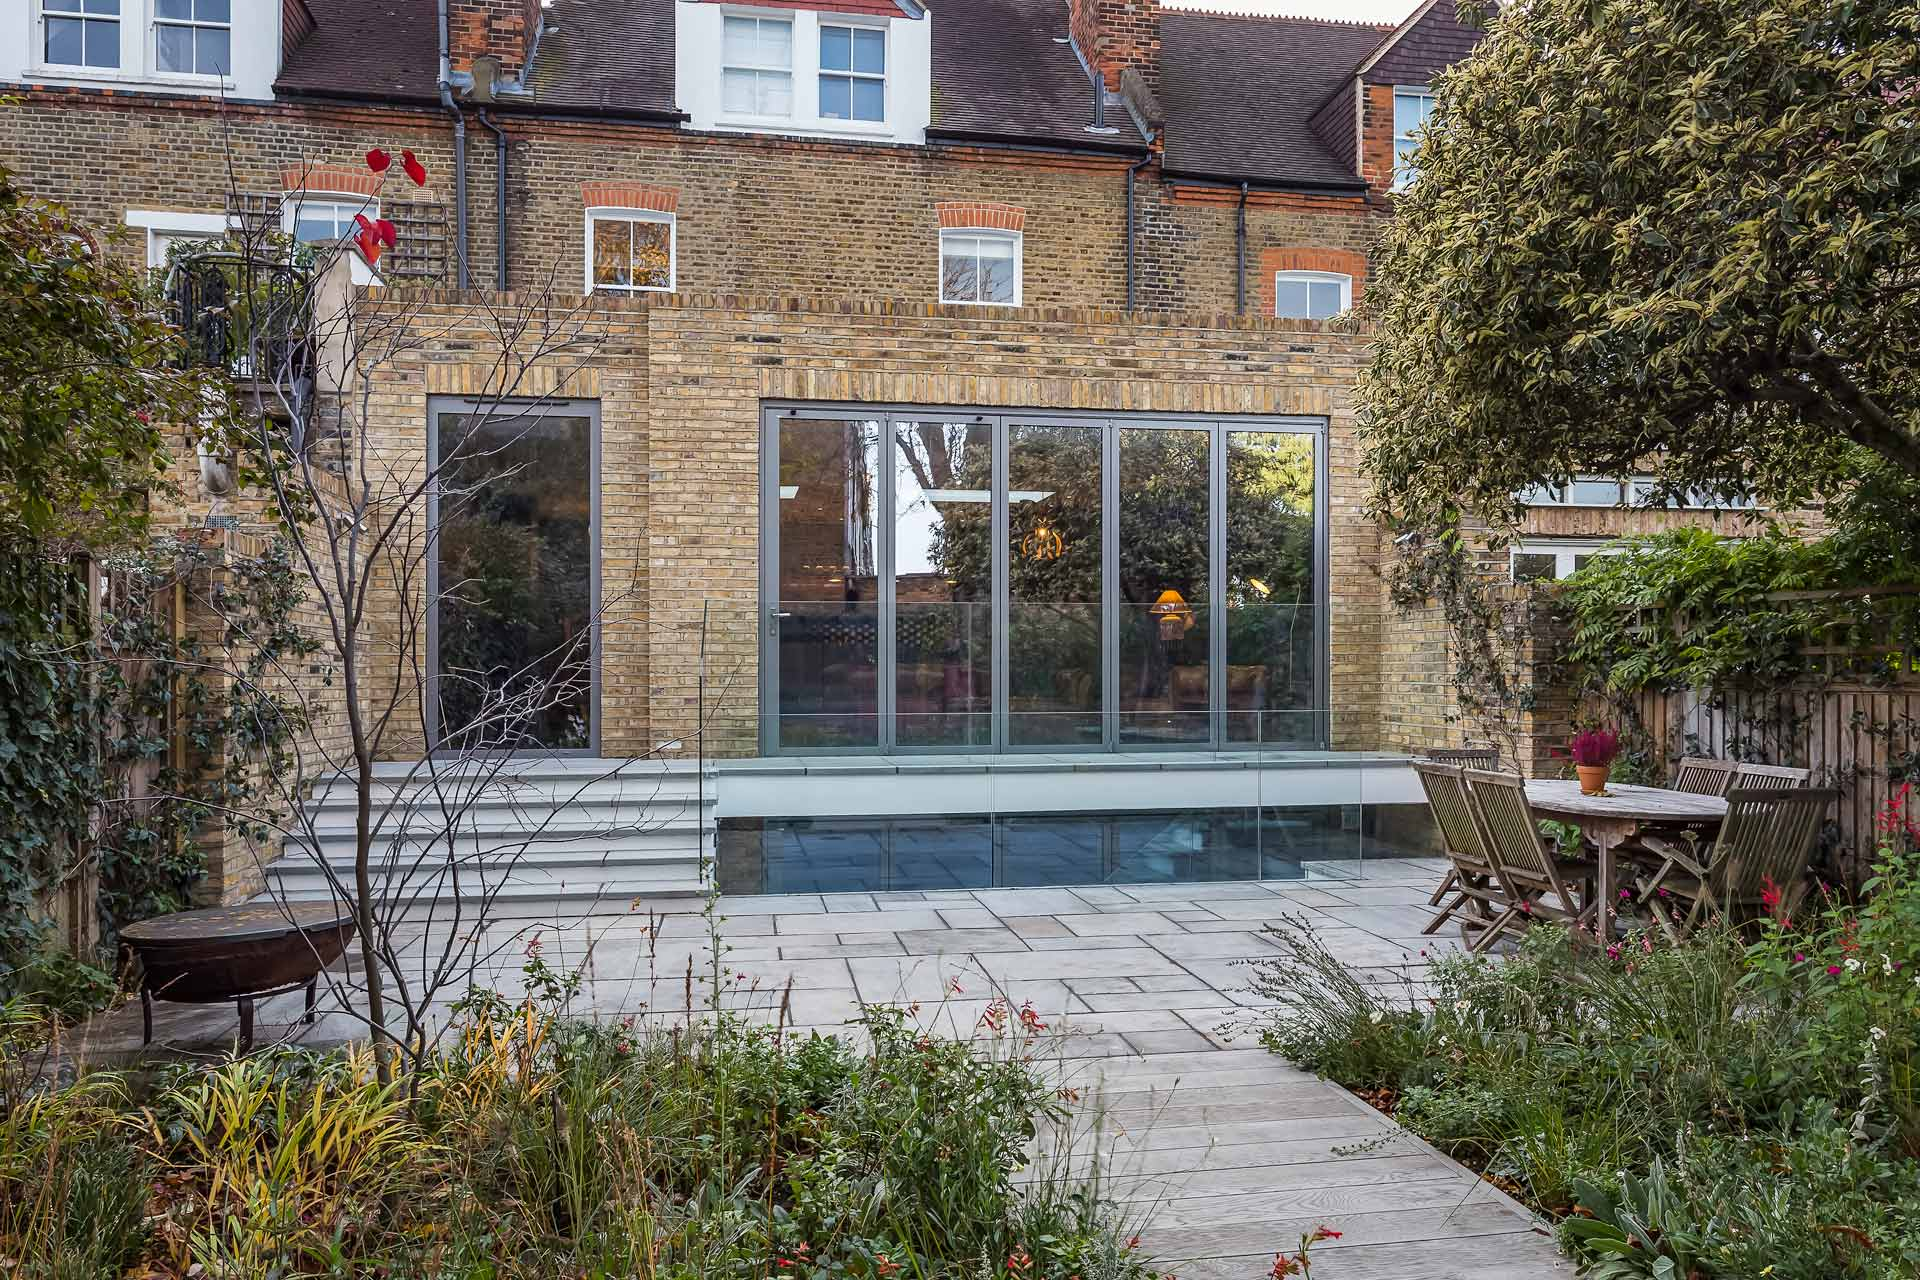 Bolingbroke Grove Wandsworth Ground Floor And Basement Extension 14